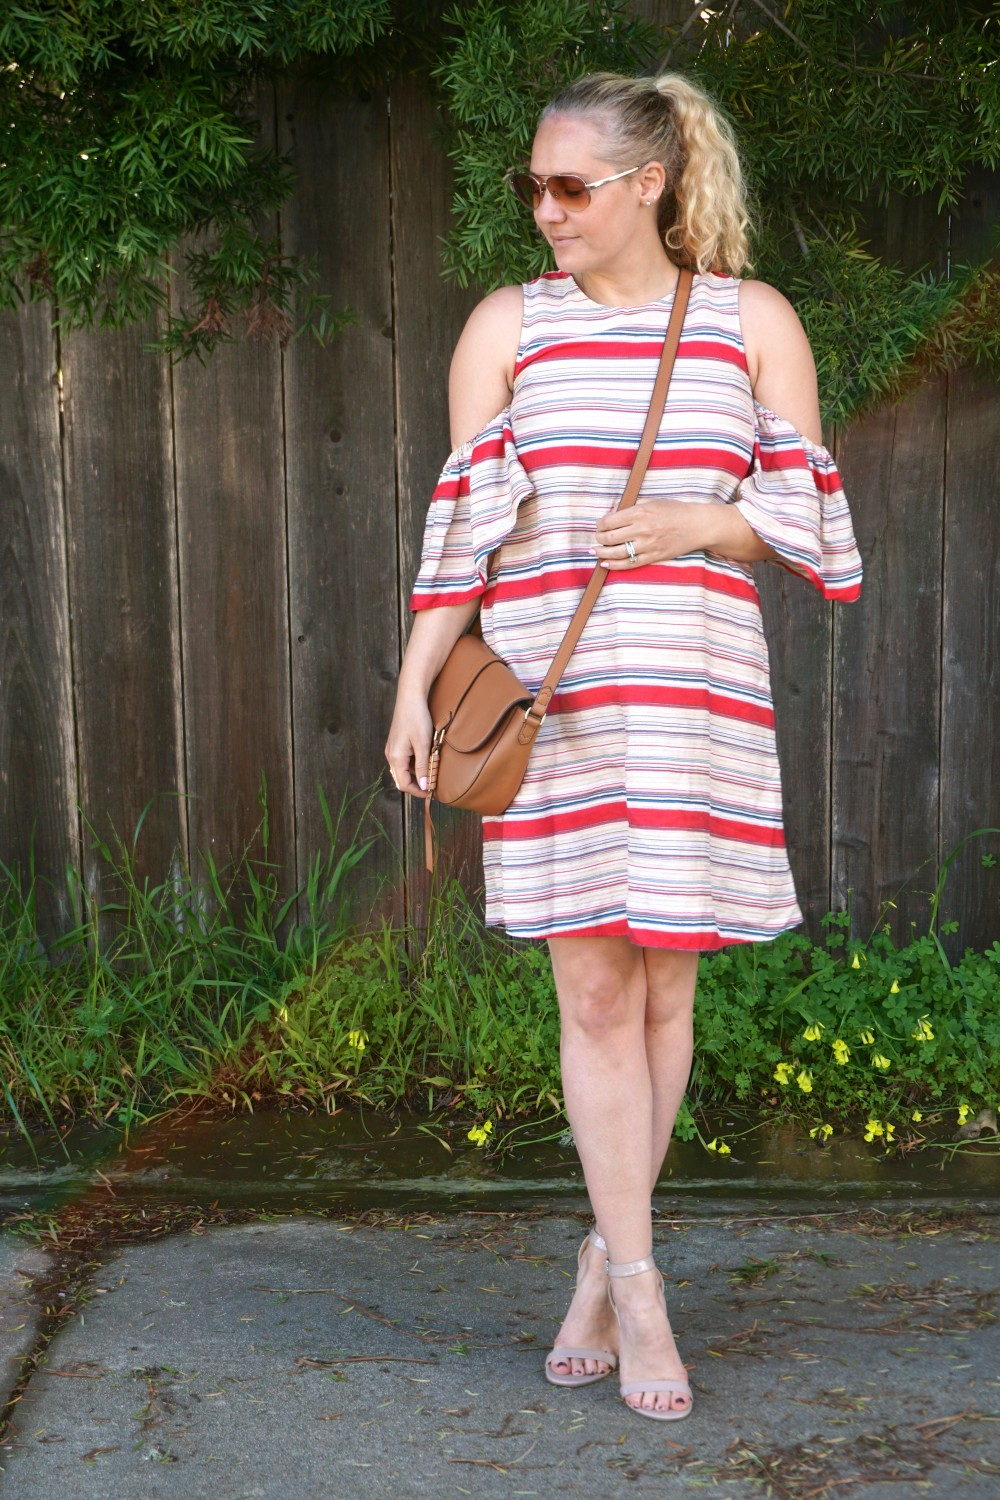 Tanya Taylor-Cold Shoulder Dress-Outfit Inspiration-Spring Style-Have Need Want